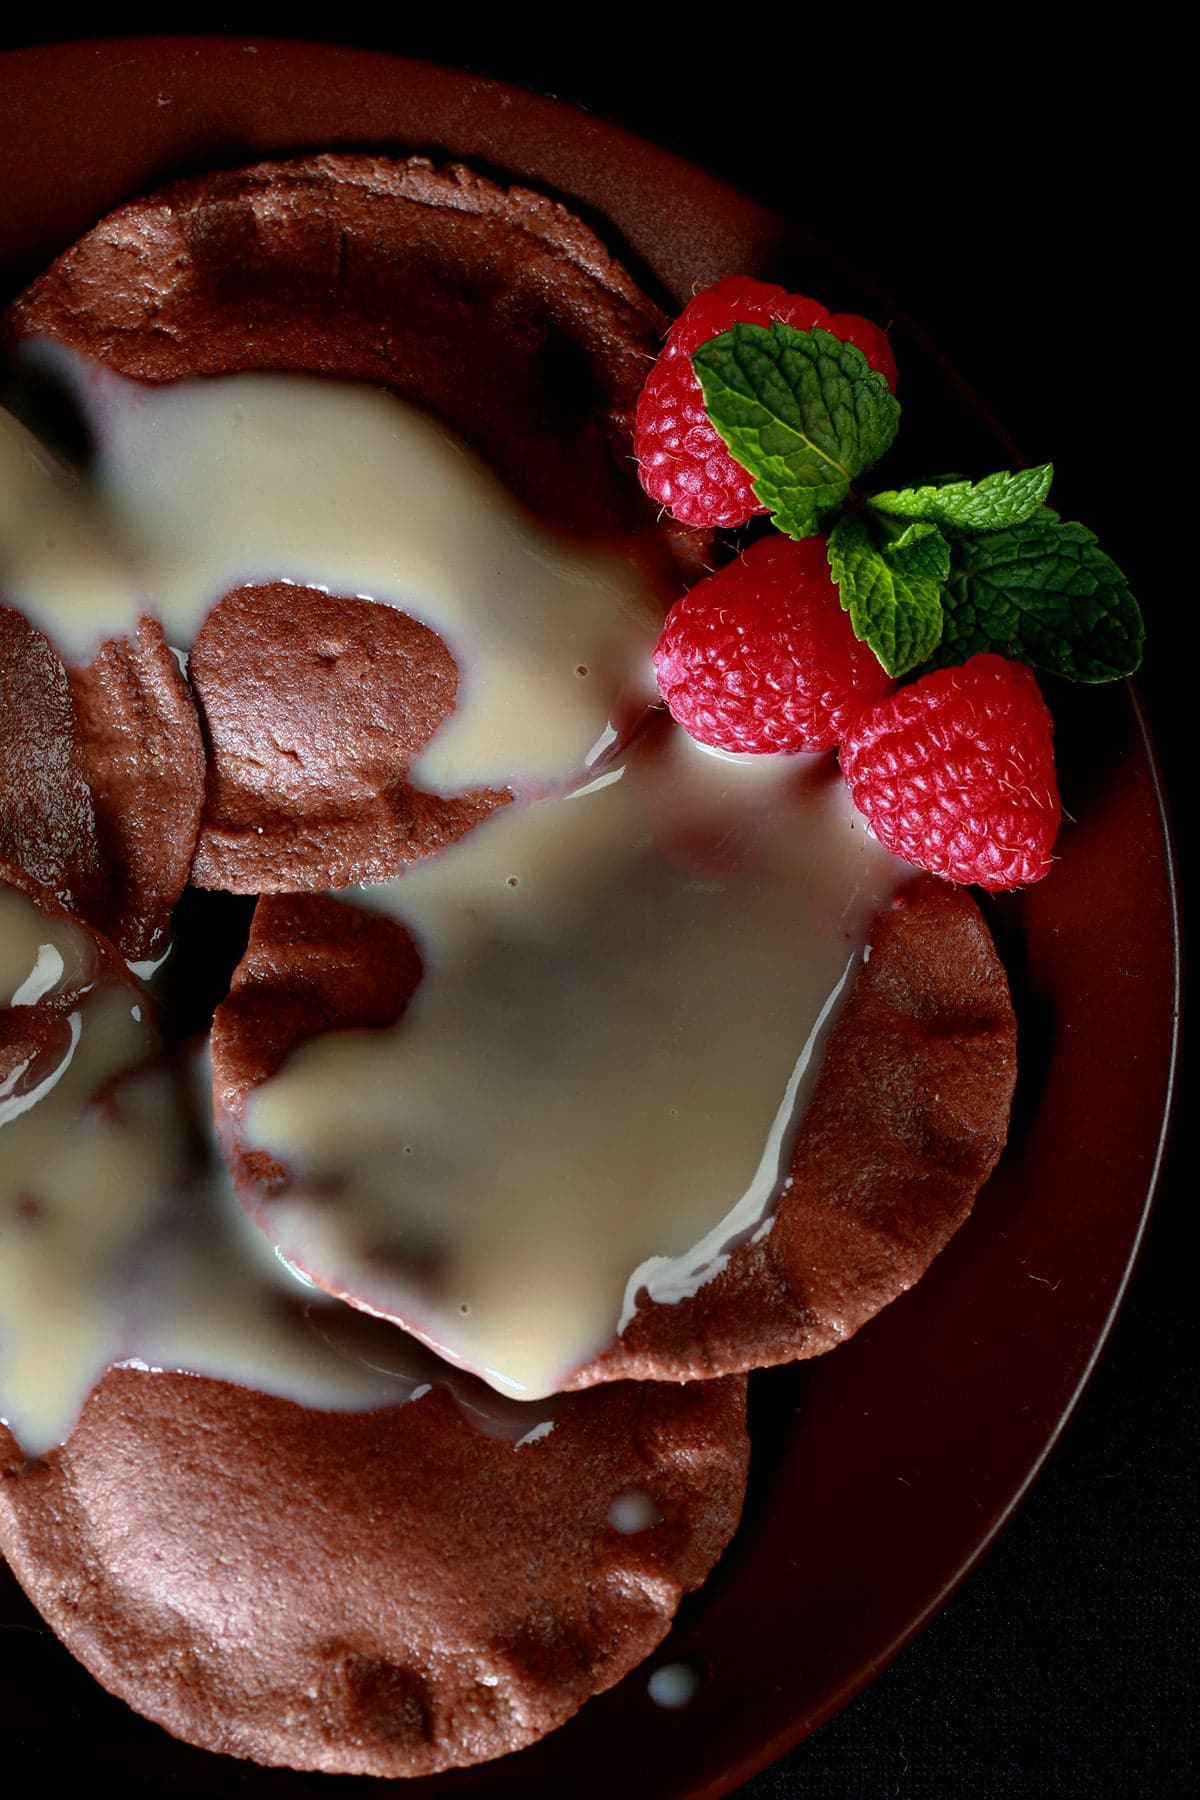 Chocolate Dessert Ravioli, arranged on a dark plate. It is drizzled with a cream sauce, and garnished with raspberries and a mint spring.